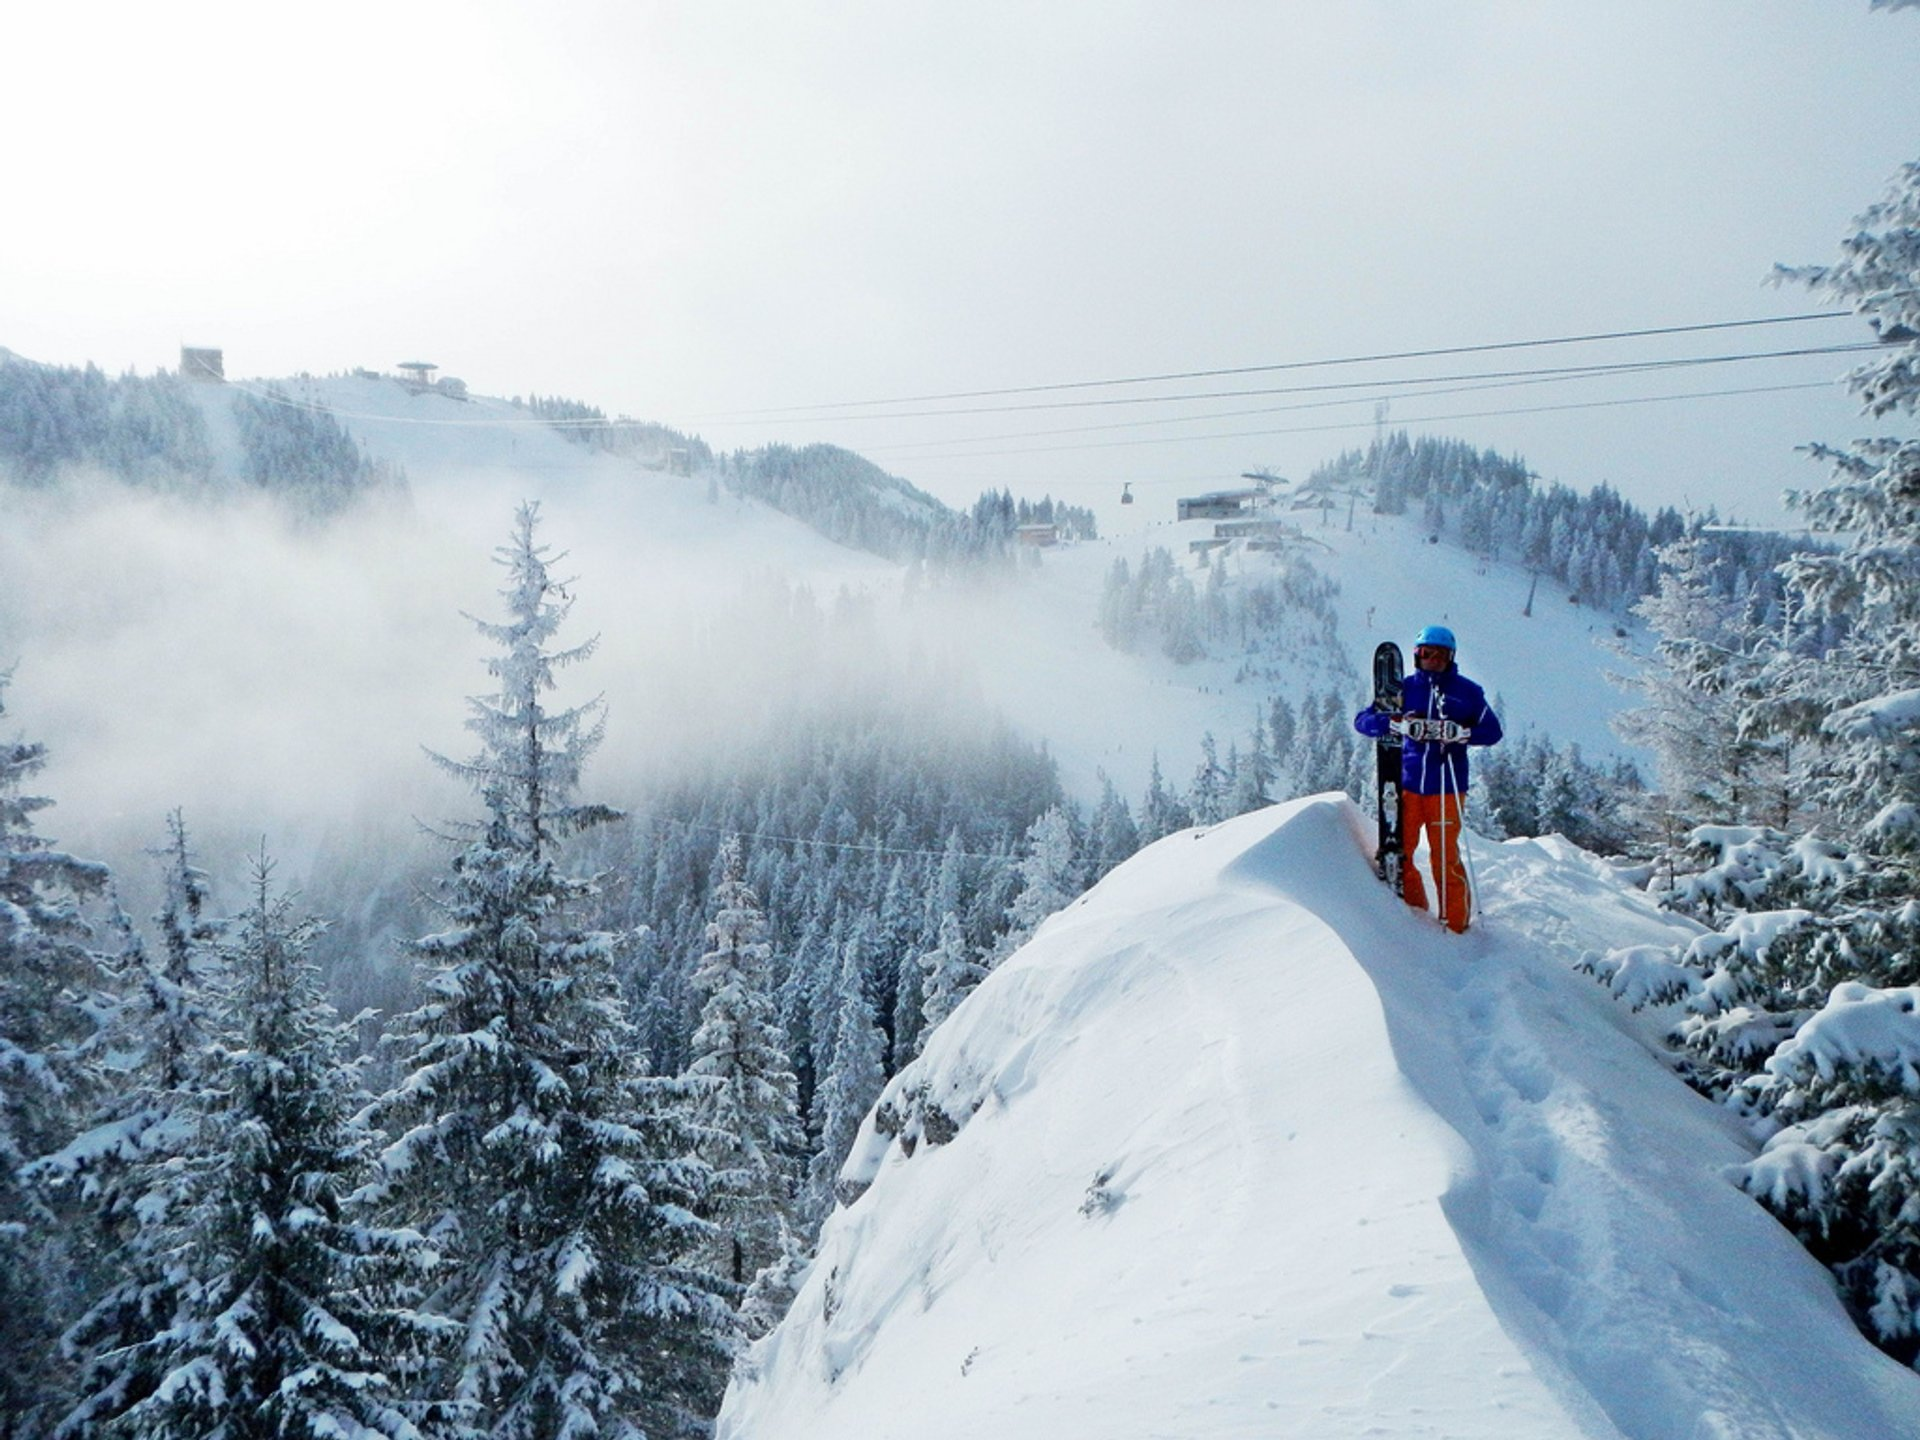 Skiing and Snowboarding in Romania 2019 - Best Time